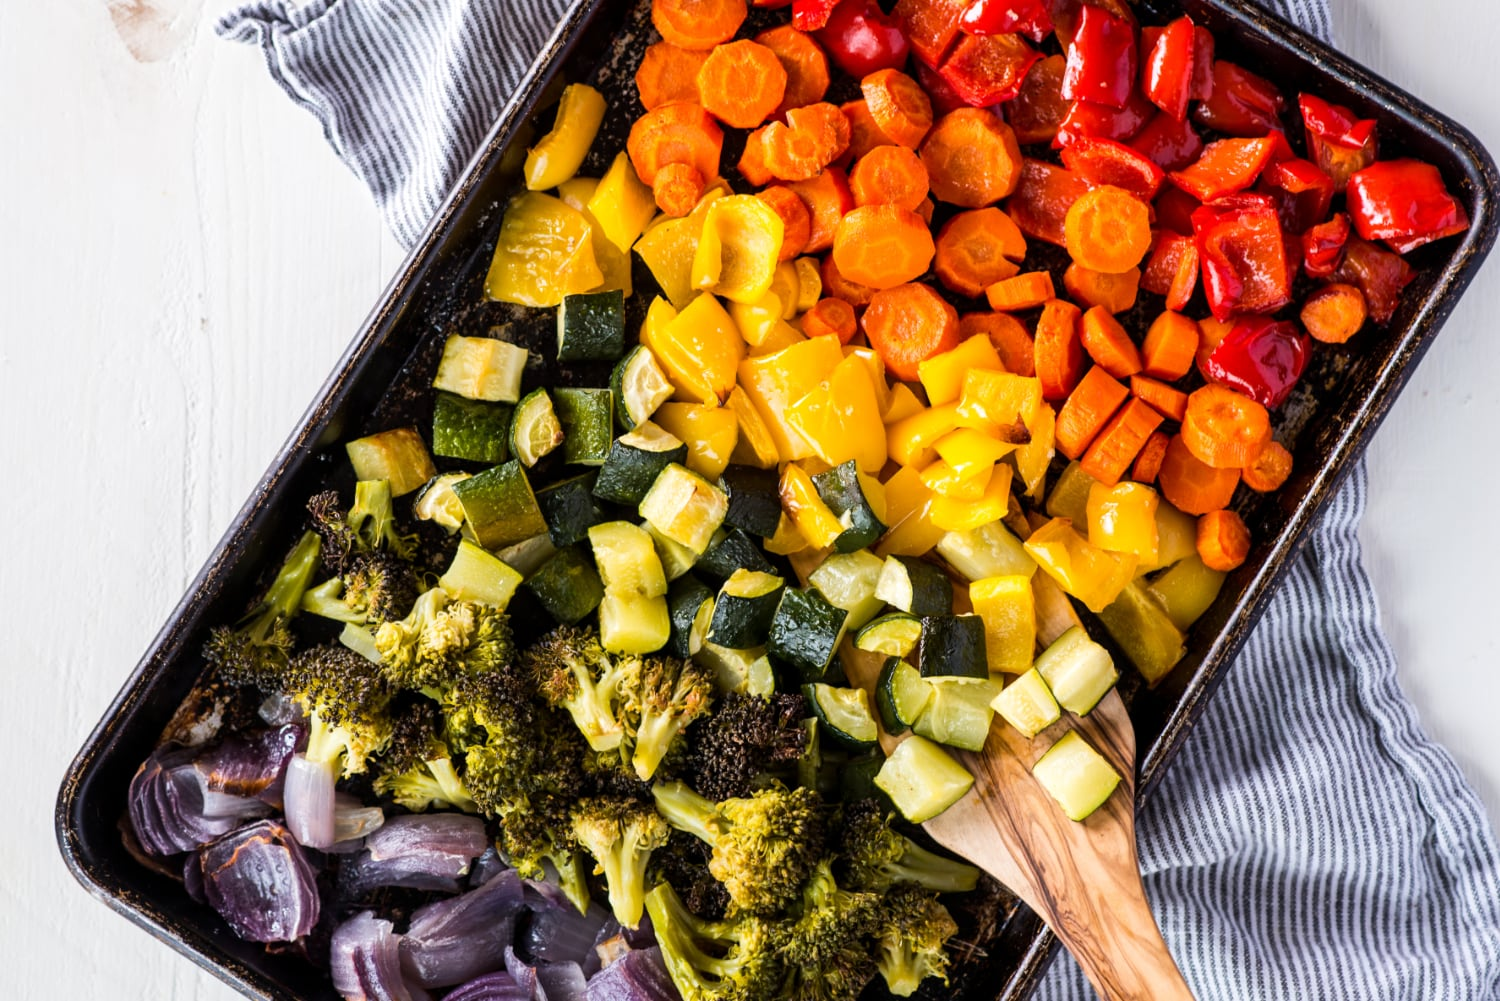 sheet pan with roasted vegetables